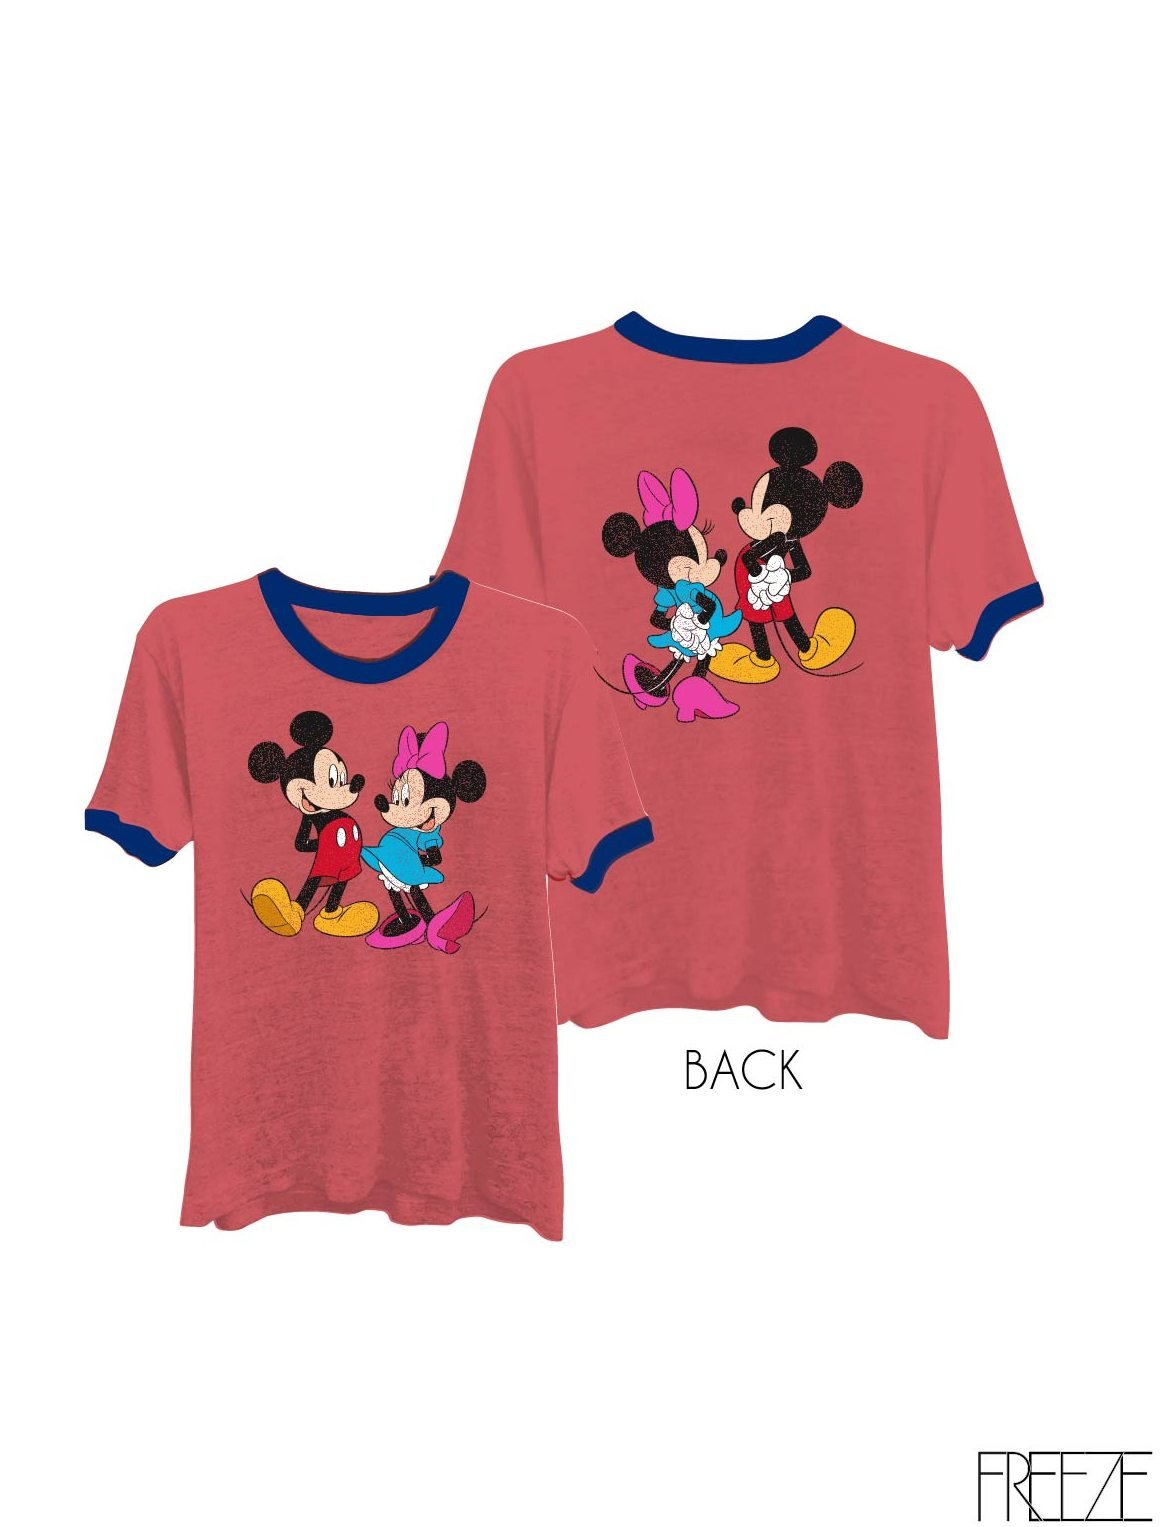 Ringer Tee Mickey Minnie Graphic Print Women Fashion T-Shirt - Chic, Cozy and Comfortable, Complete with Short Sleeves and an Easy Fit, Round Neck with Contrast Ringer, Available in All Sizes Red Medium